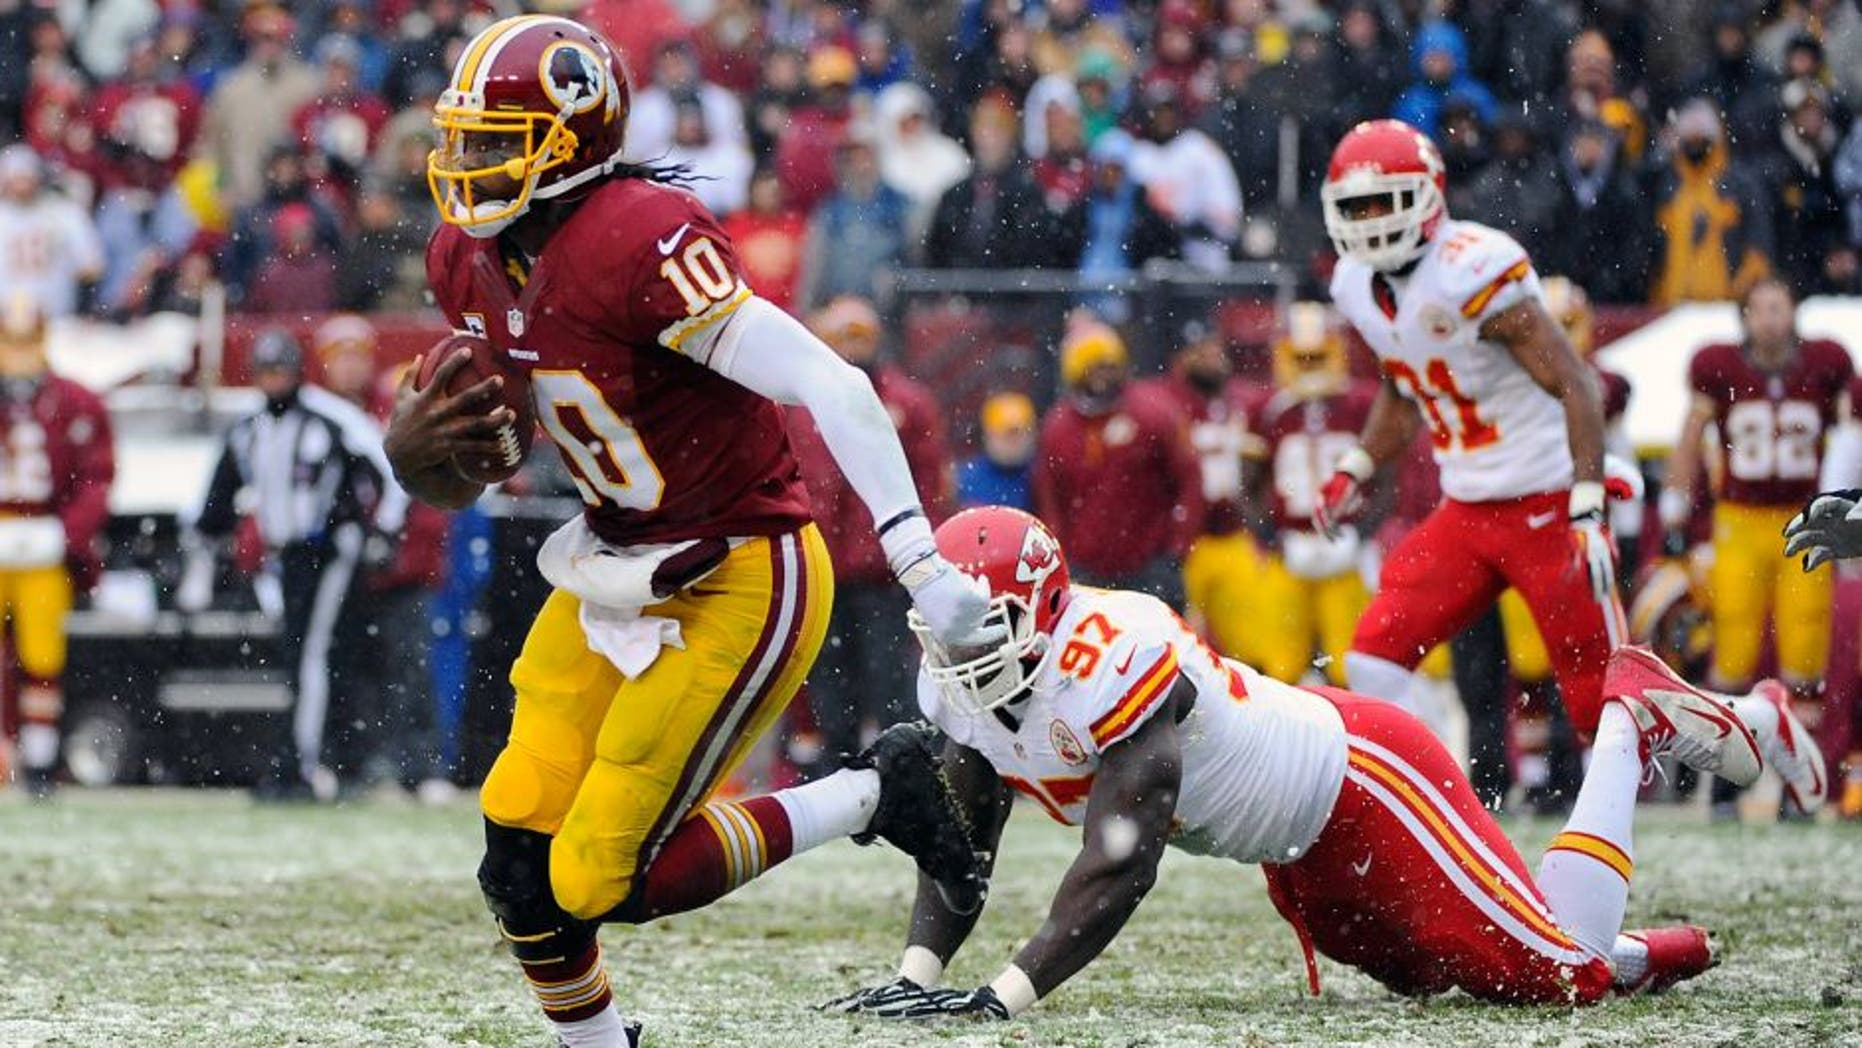 Dec 8, 2013; Landover, MD, USA; Washington Redskins quarterback Robert Griffin III (10) avoids the tackle by Kansas City Chiefs defensive end Allen Bailey (97) during the second quarter at FedEx Field. Mandatory Credit: Brad Mills-USA TODAY Sports